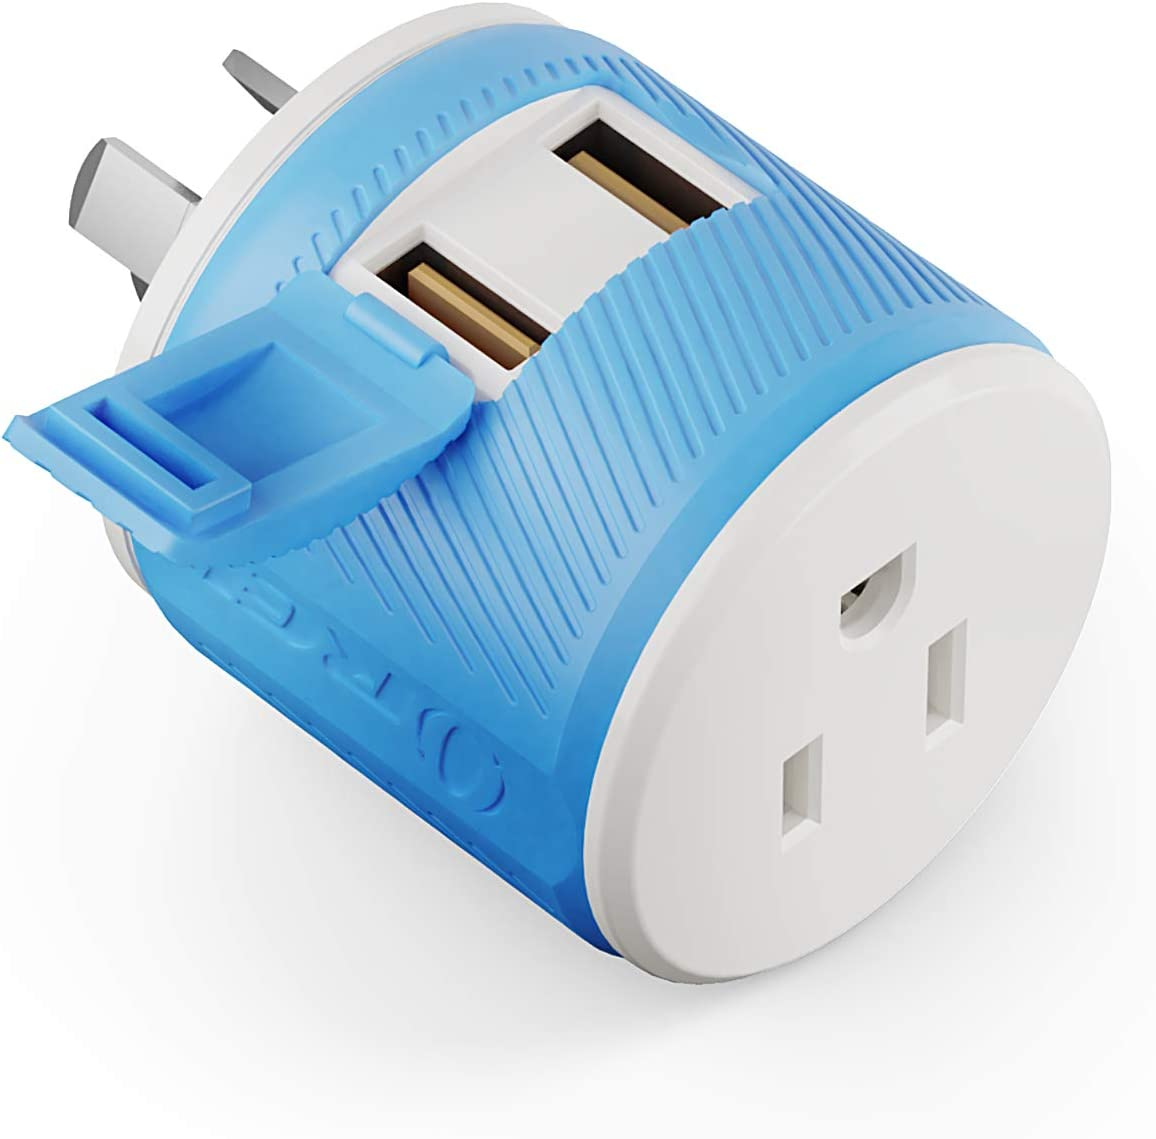 Australia, New Zealand, China Travel Plug Adapter by OREI with Dual USB + Surge Protection - Type I (U2U-16), Will Work with Cell Phones, Camera, Laptop, Tablets, iPad, iPhone and More